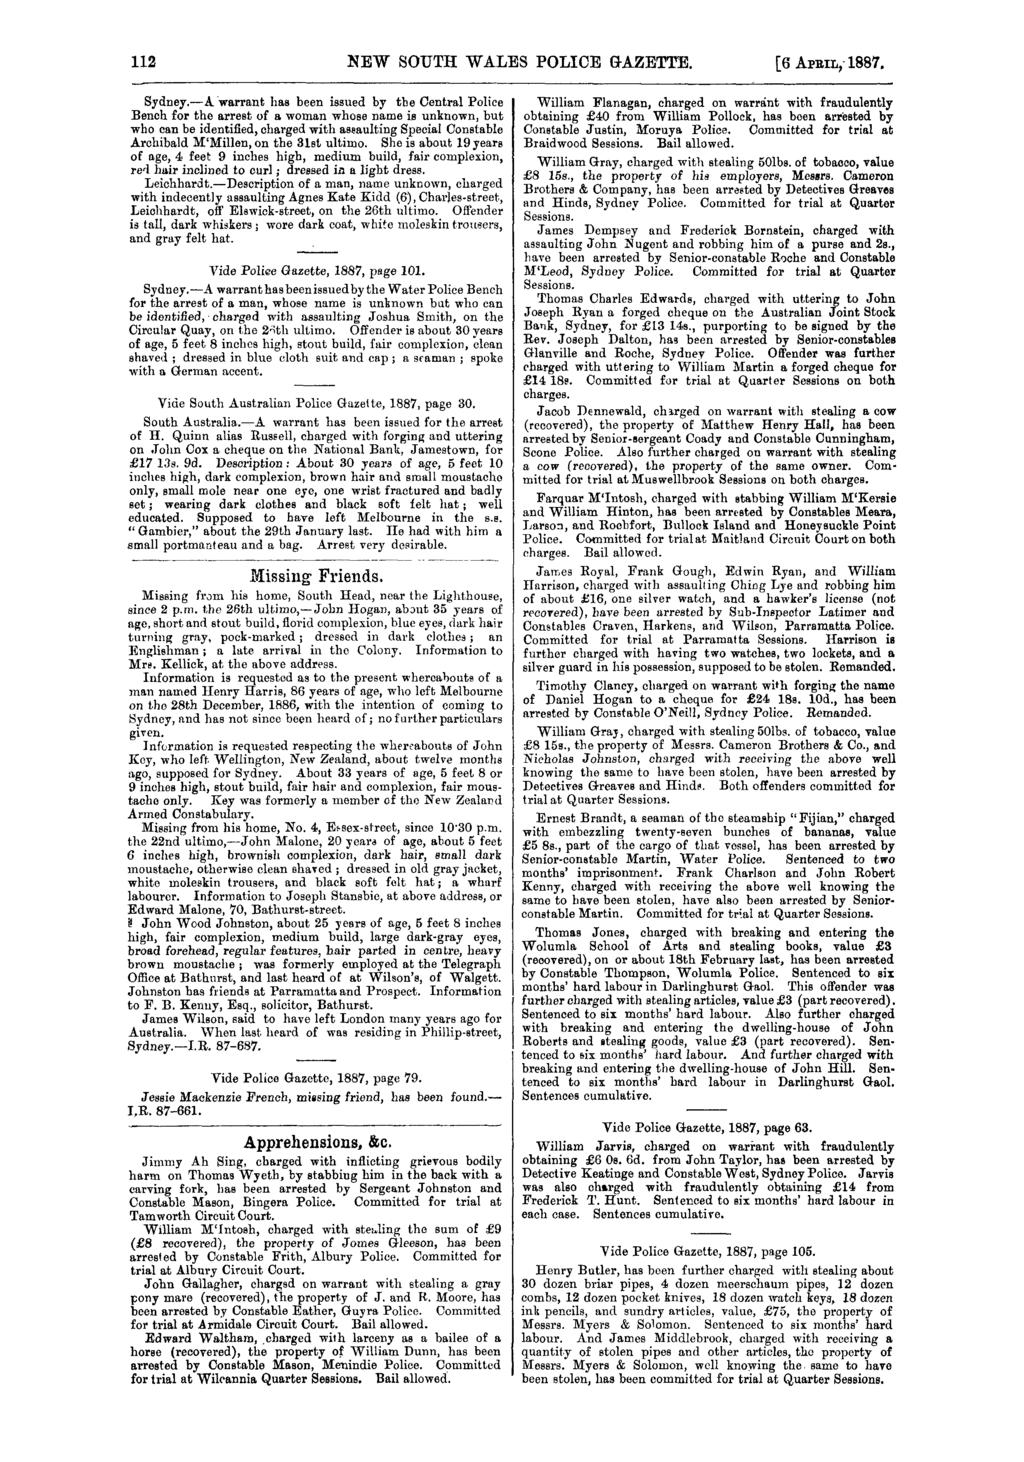 112 NEW SOUTH WALES POLICE GAZETTE. [6 APRIL; 1887, Sydney.